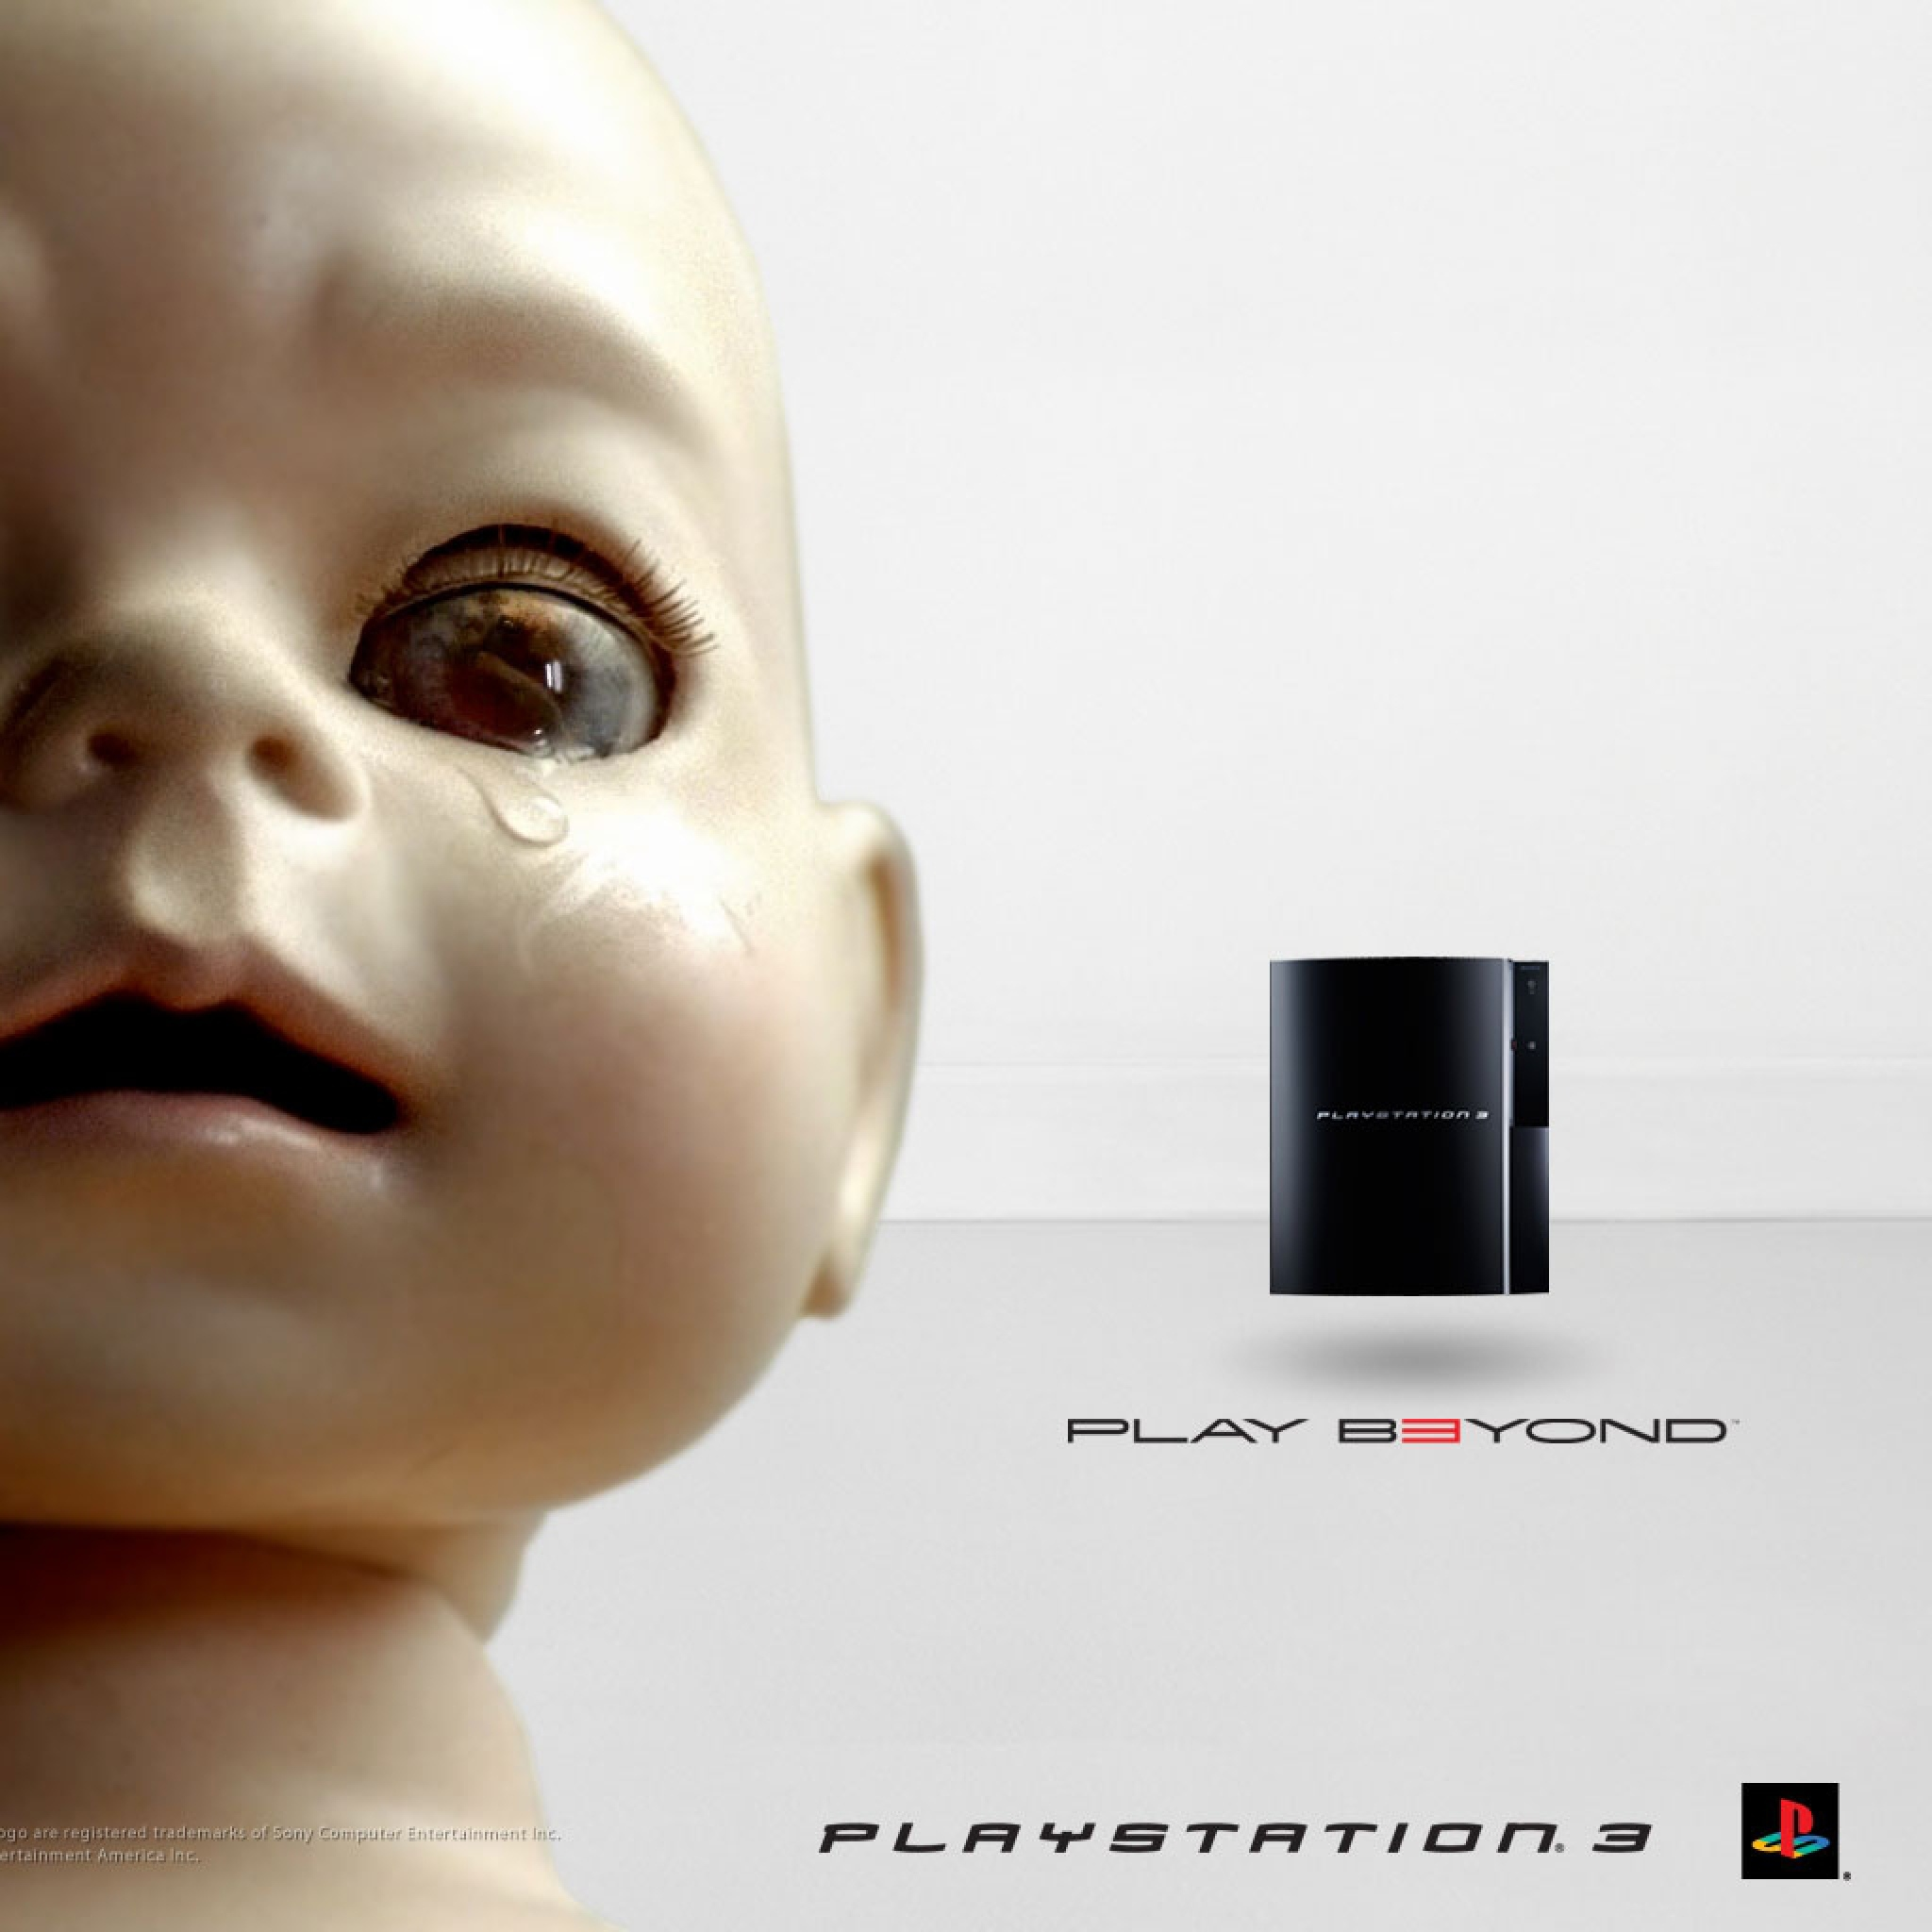 playstation_3_play_beyond_game_console_doll_tears_48533_2048x2048.jpg